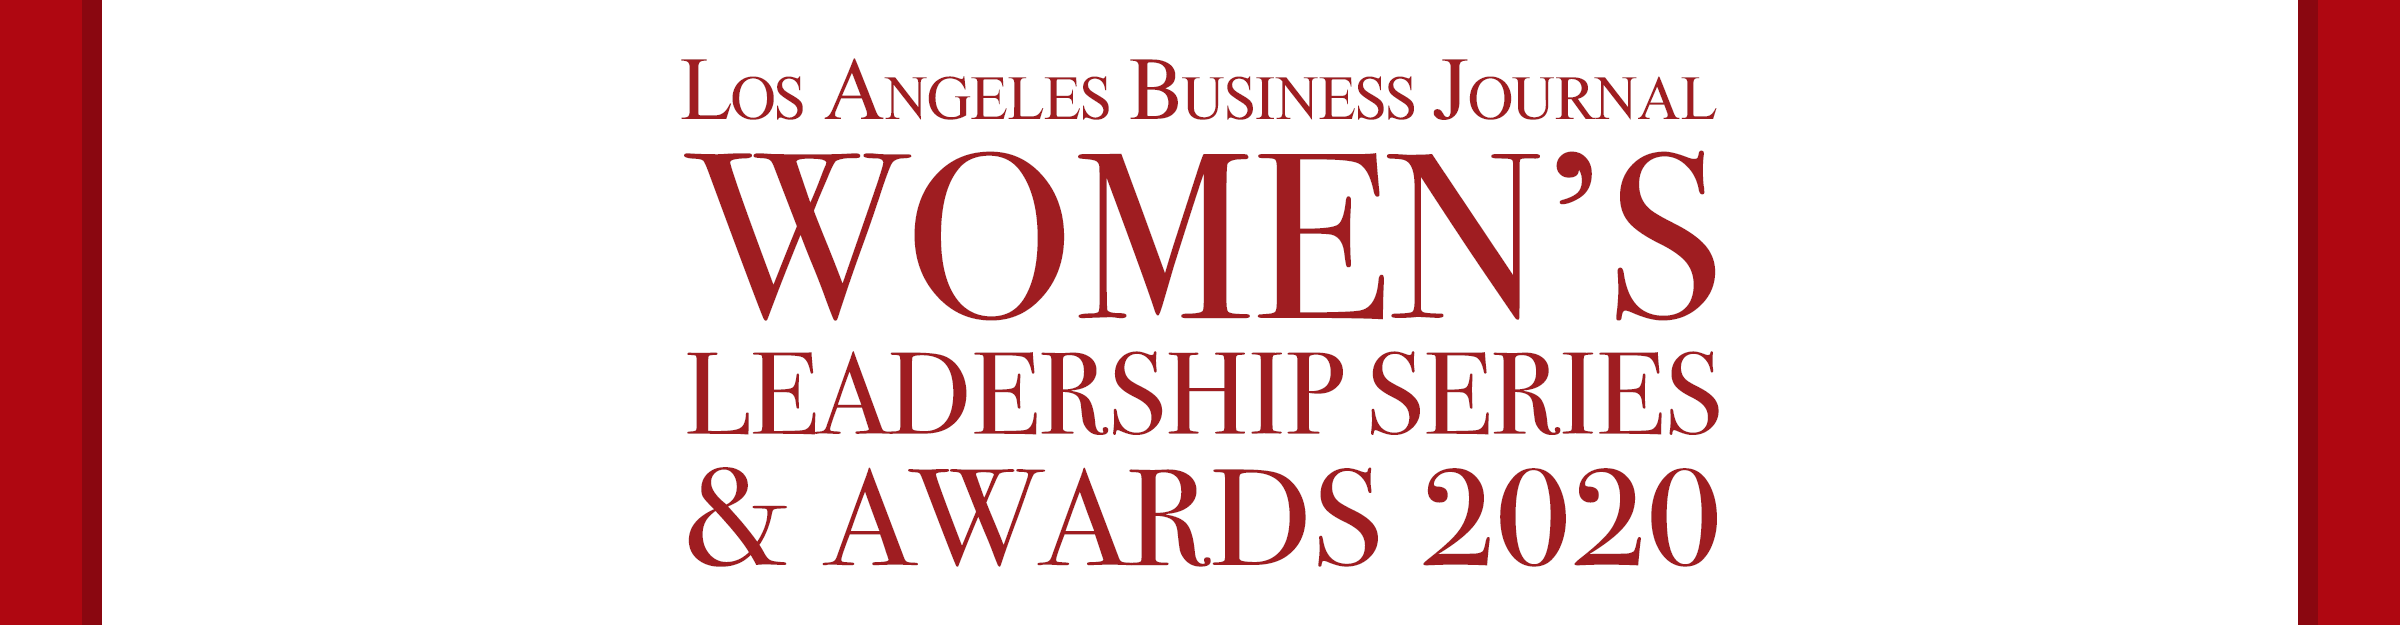 Women's Leadership Series & Awards 2020